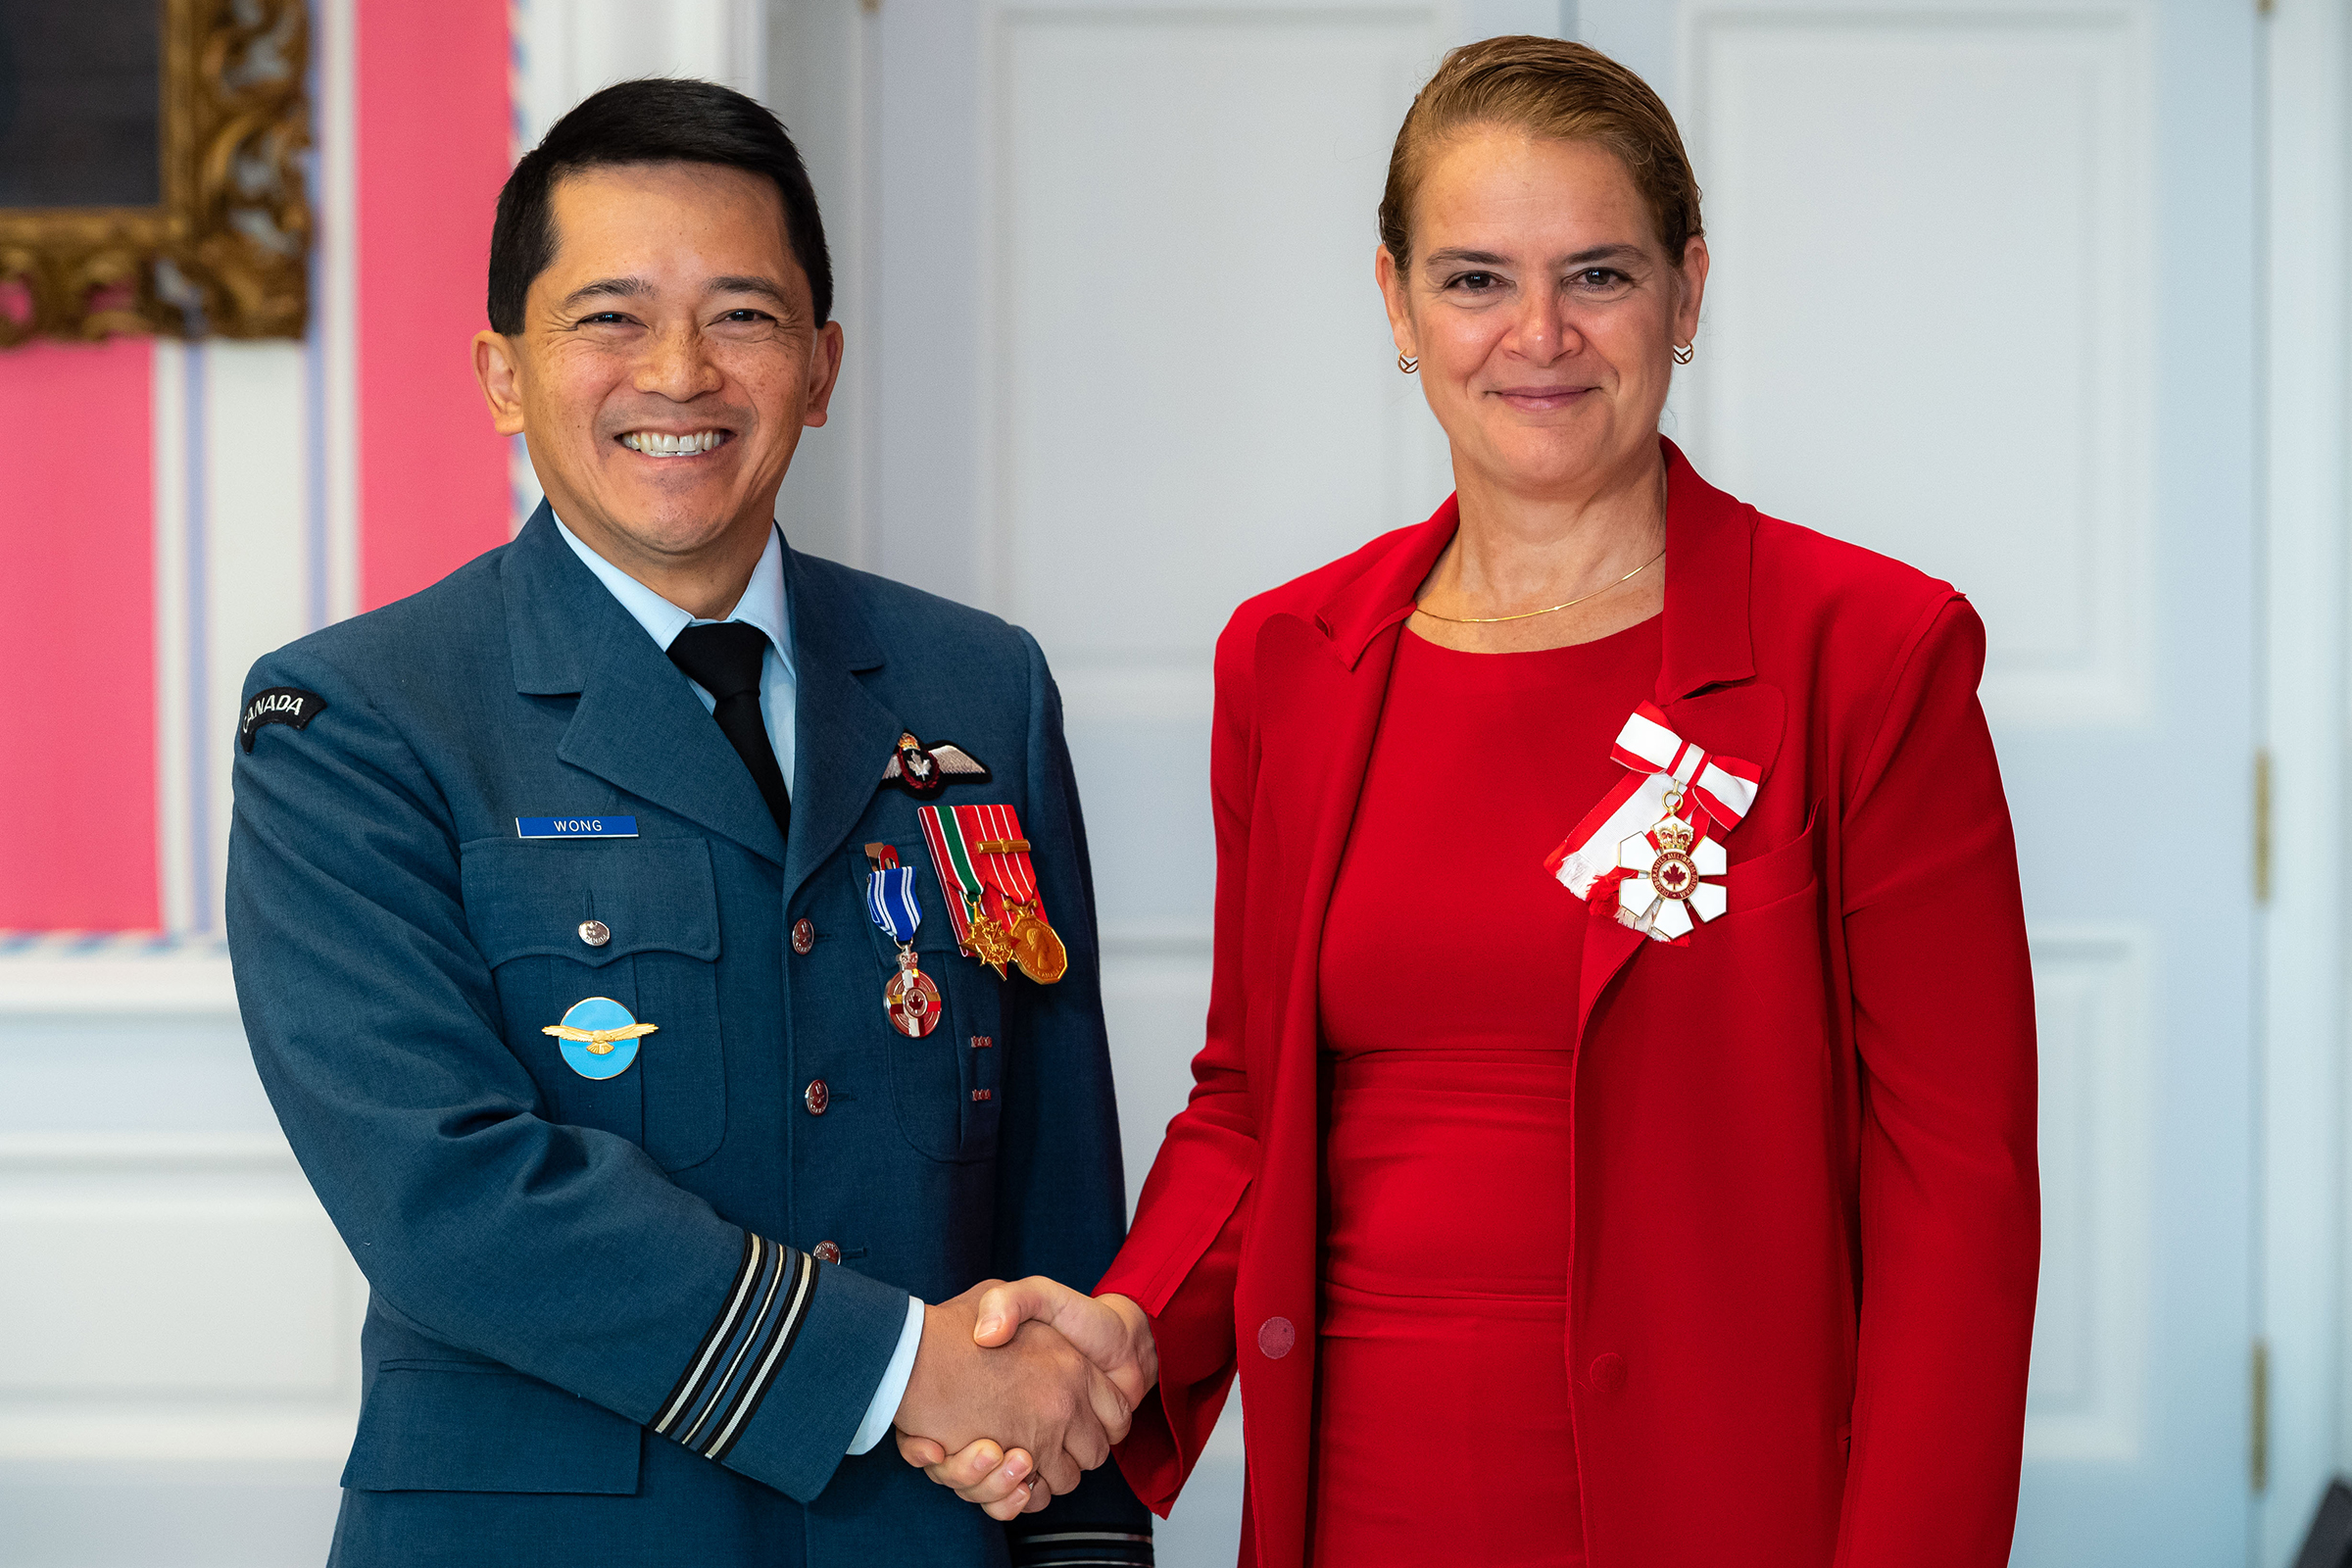 Governor General and Commander-in-Chief of Canada Julie Payette presents Major Wayne Terence Wong with the Meritorious Service Medal (Military Division) on November 12, 2019. PHOTO: Master Corporal Mathieu Gaudreault, GG06-2019-0257-097, © OSGG